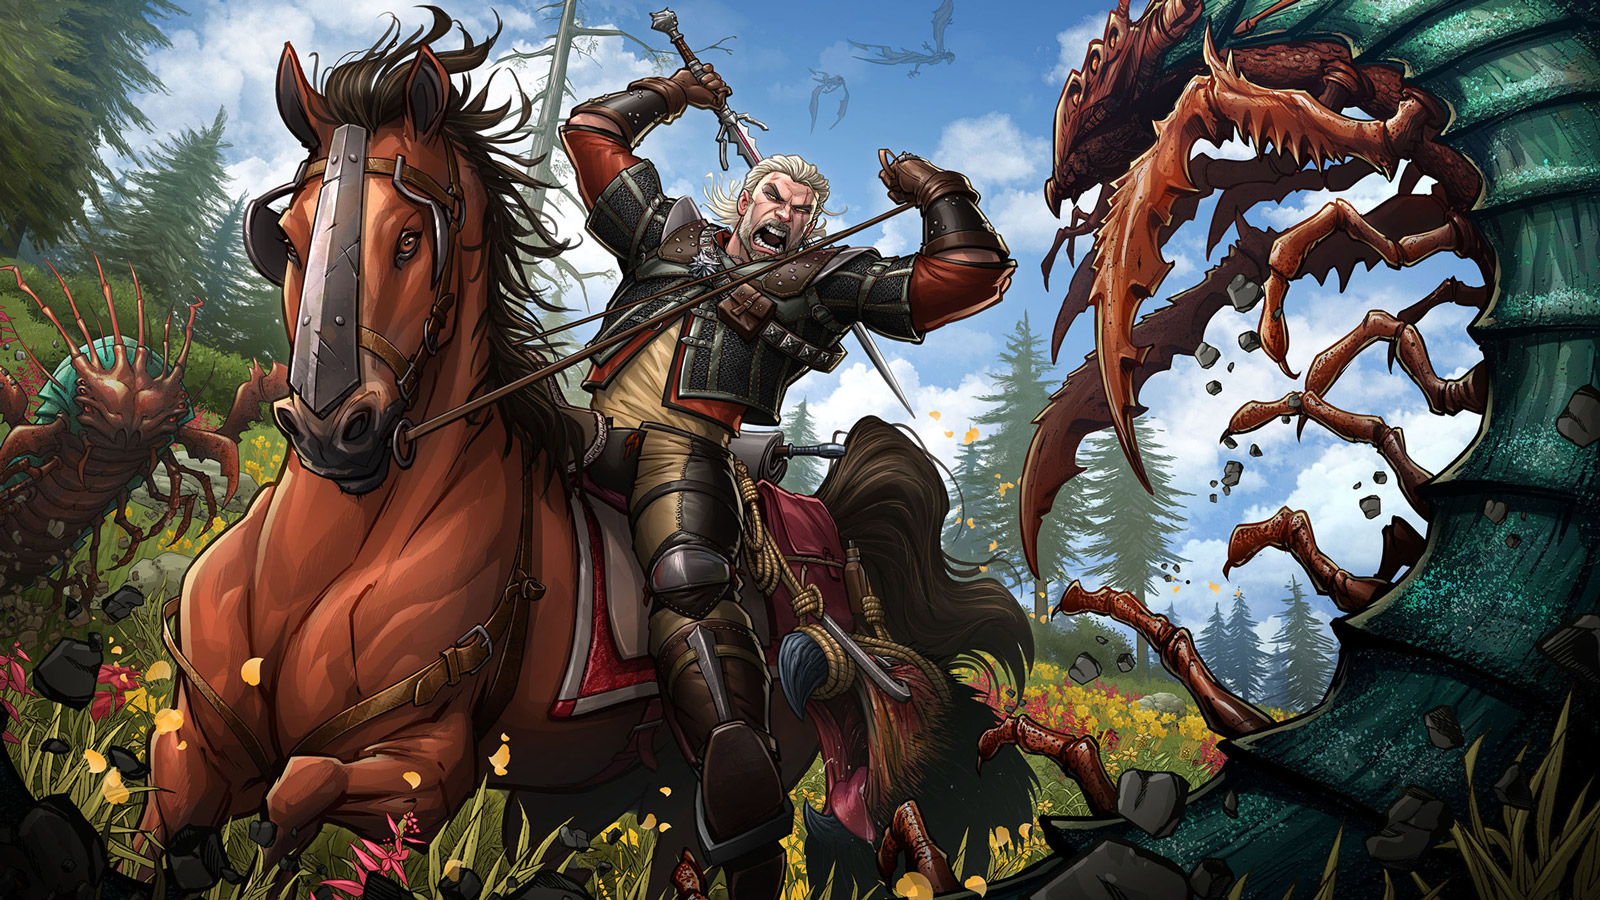 Free The Witcher 3 Wallpaper in 1600x900